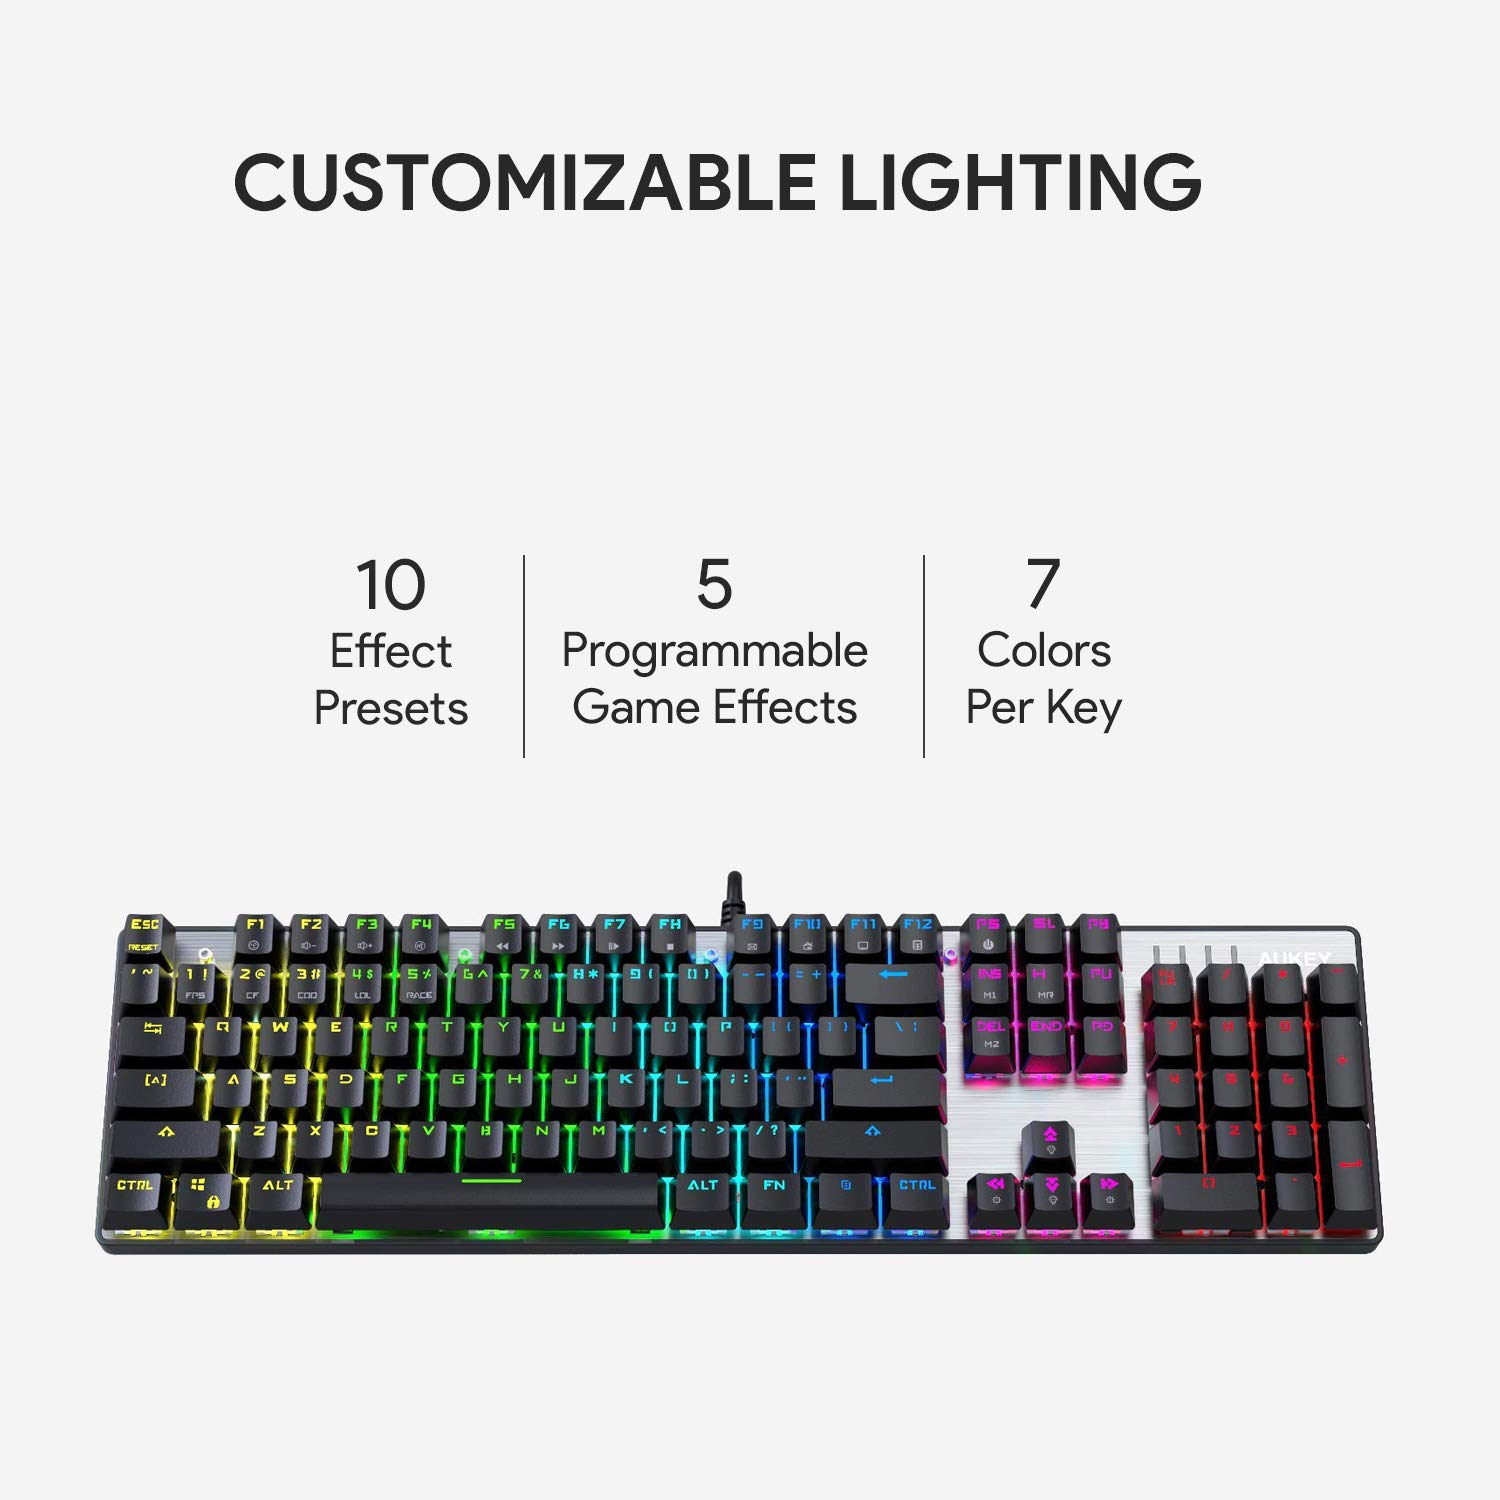 Aukey Mechanical Keyboard Blue Switch 104 Key Rgb Pc Printed Circuit Board Customized Pcb Boards Buy Tablet Gaming With Customizable Lighting Effects Aluminium Usb Wired For And Typing Mac Compatible Computers Accessories